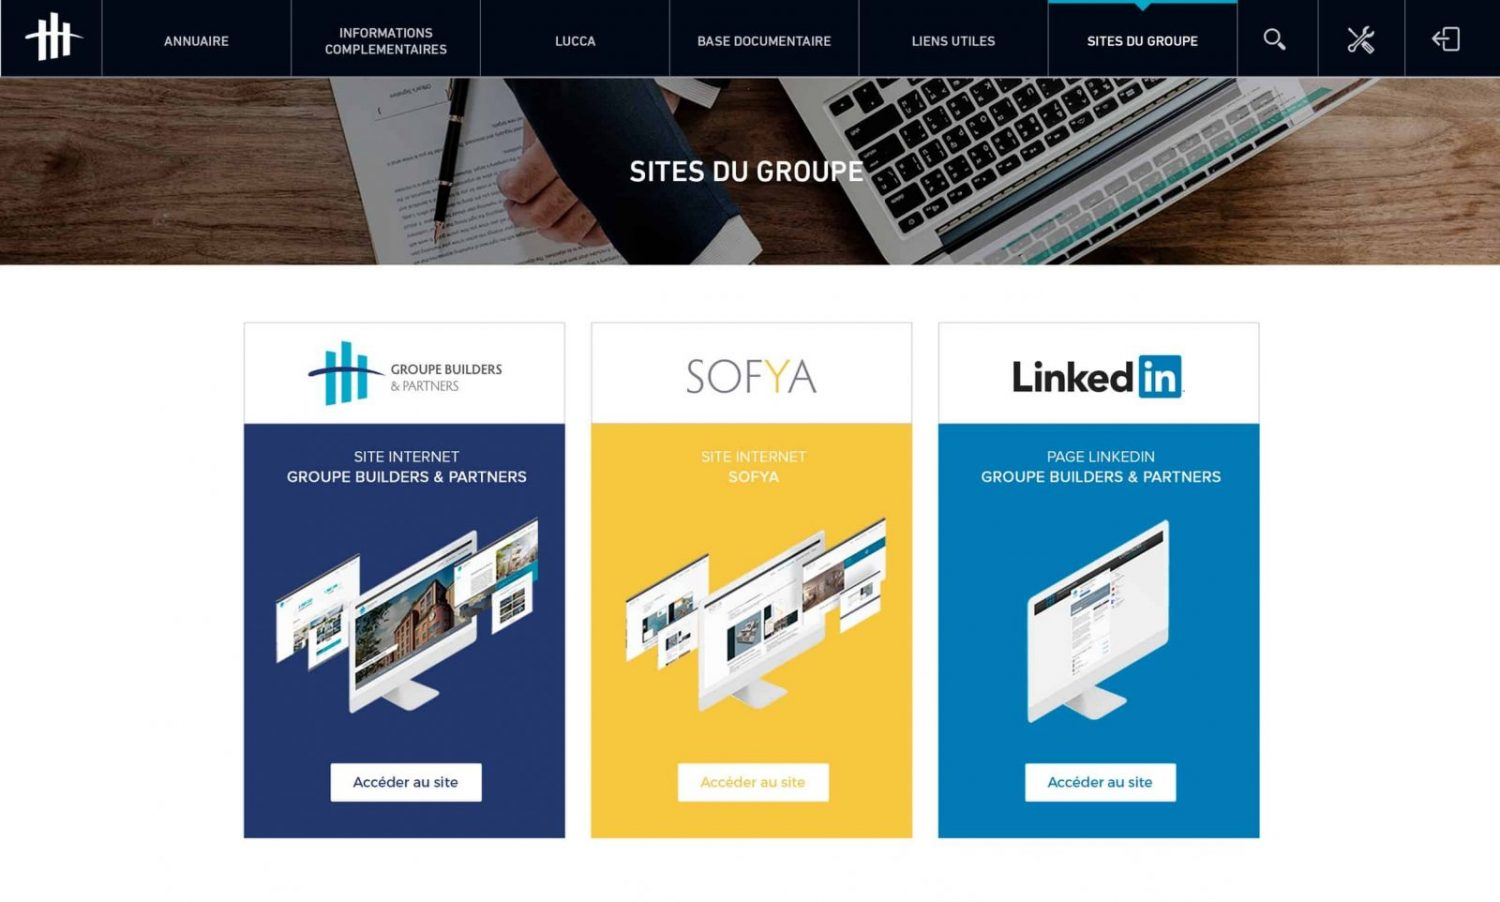 intranet_groupe_builders_sites_du_groupe